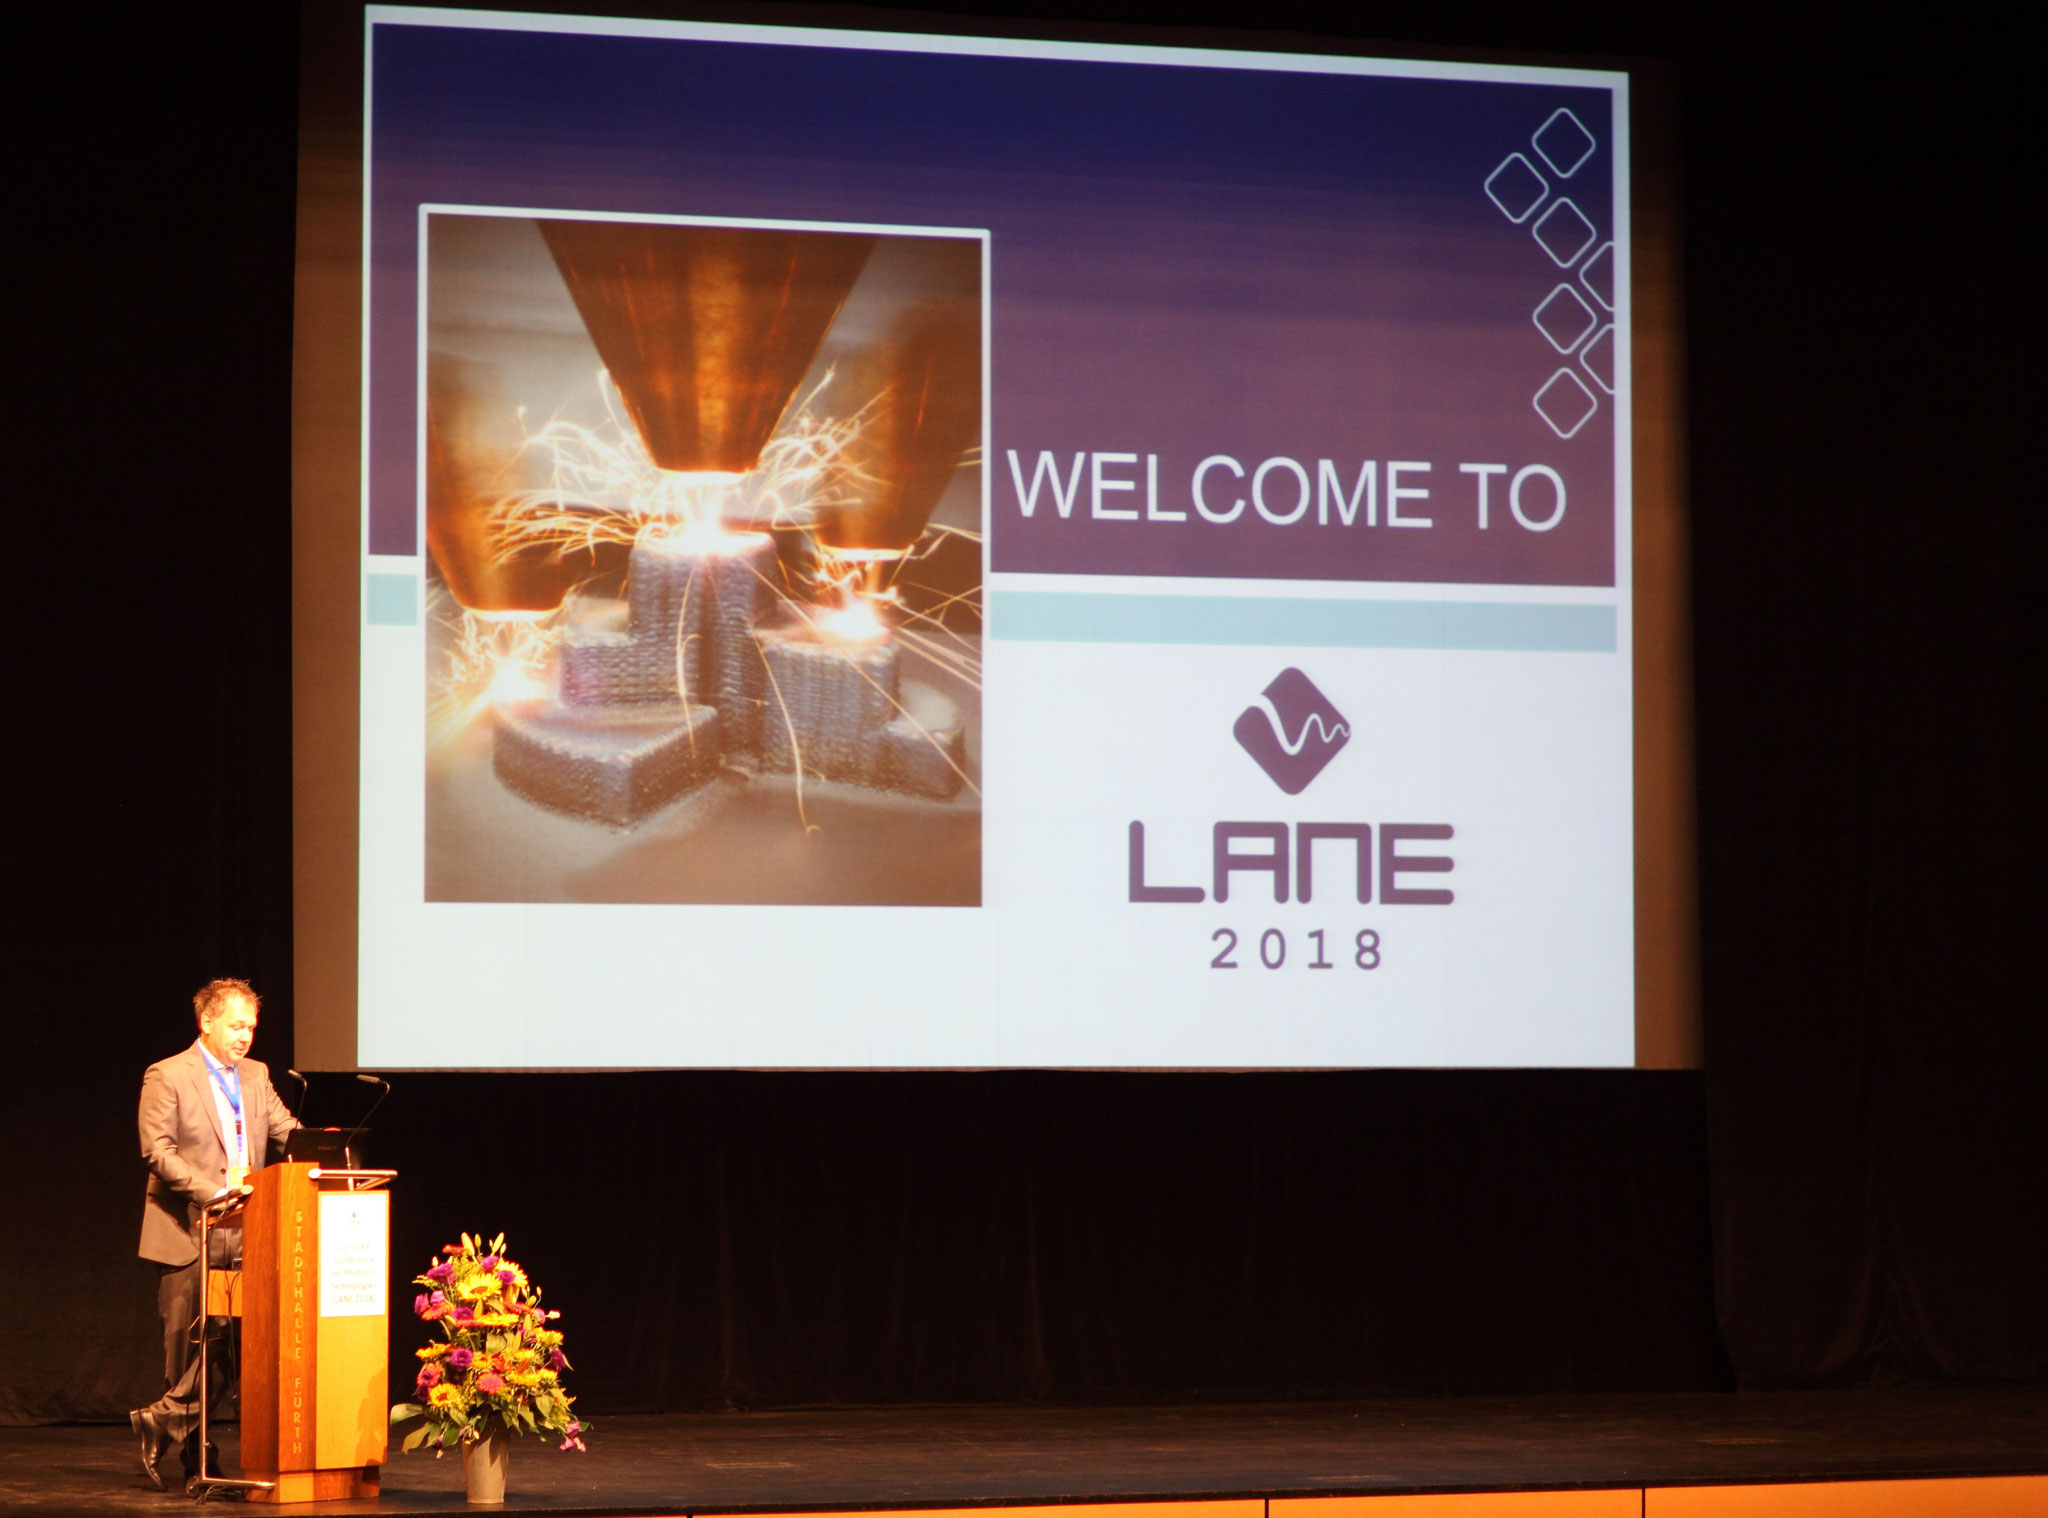 Conference chair Prof. Michael Schmidt is giving his LANE 2018 welcoming speech